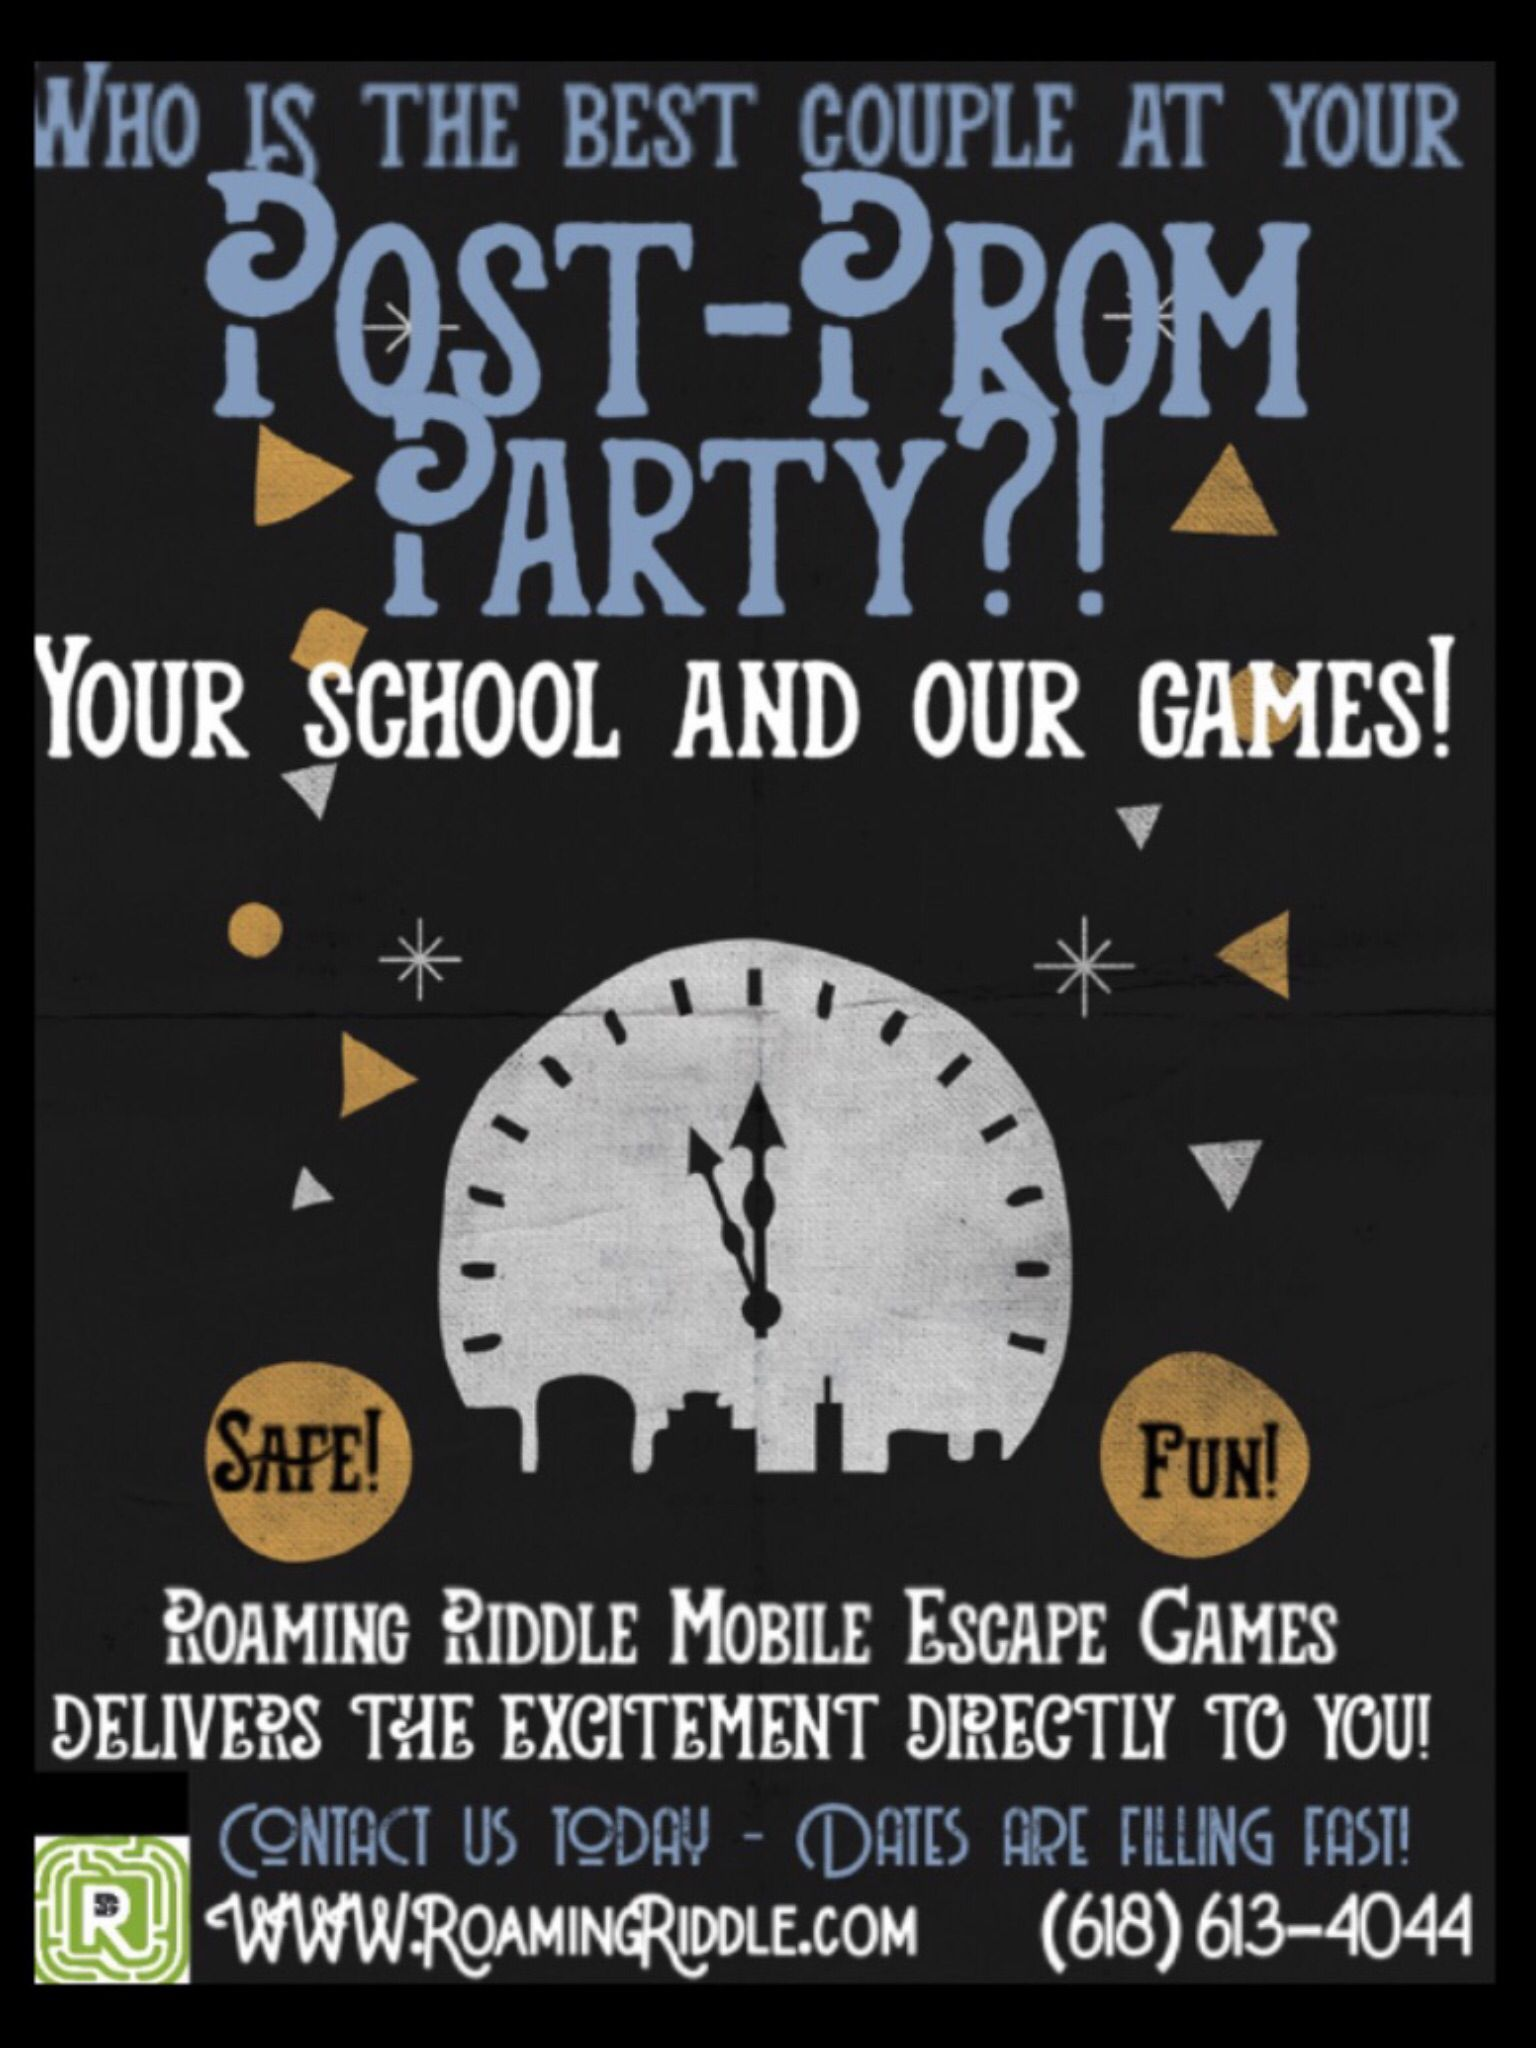 Roaming Riddle brings the escape room to your Post Prom